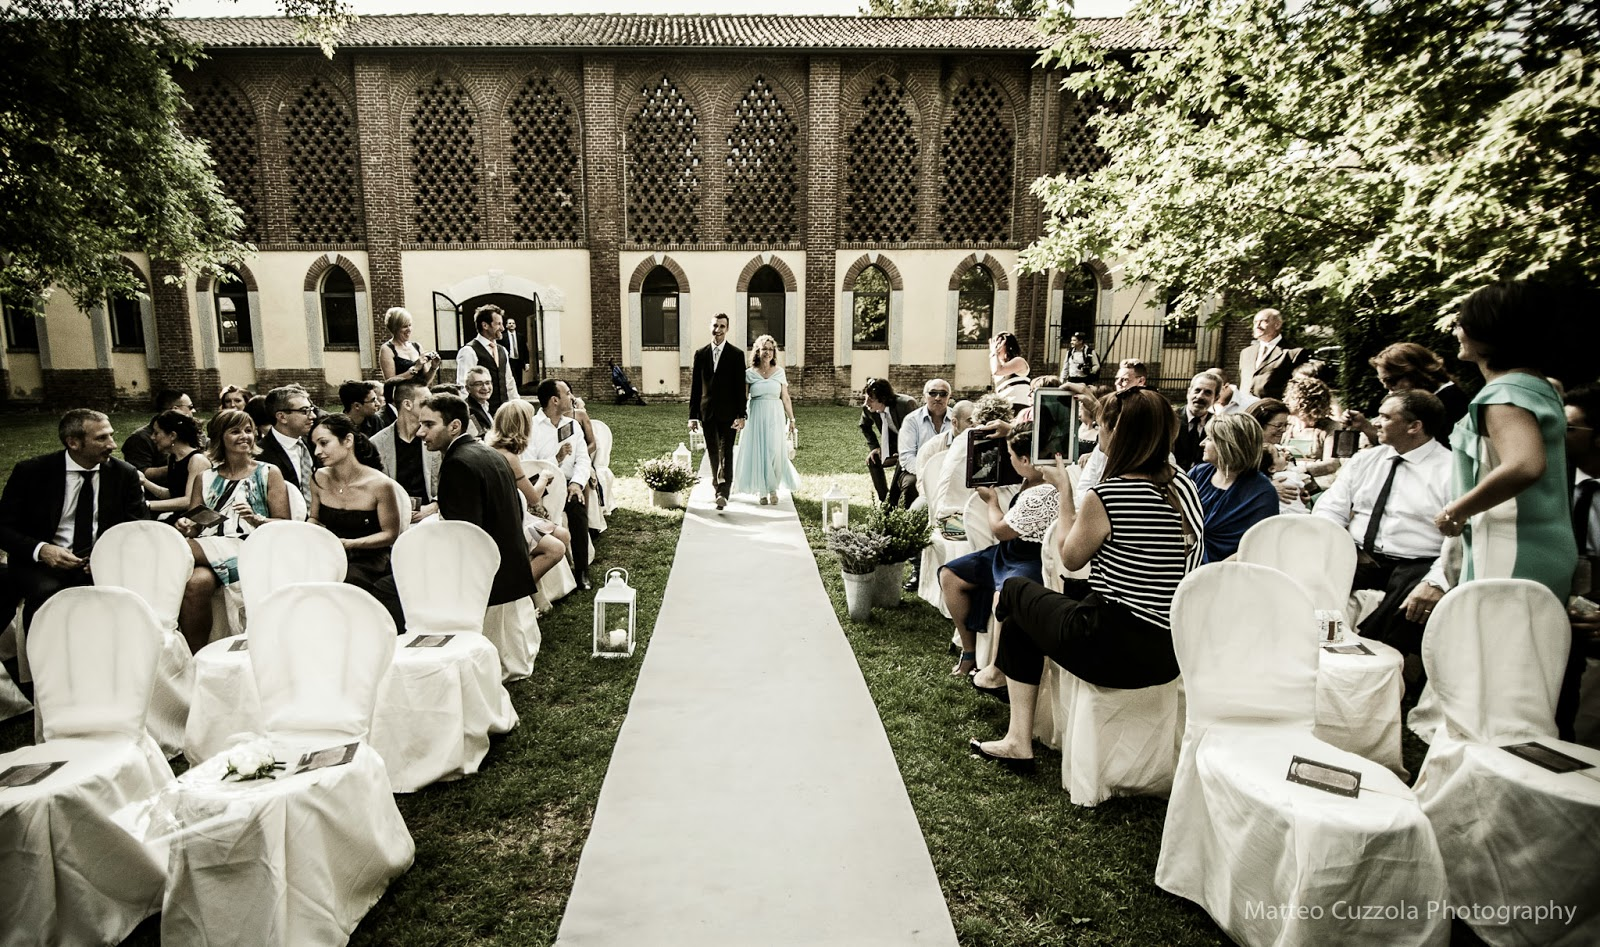 Matrimonio Country Chic Bergamo : Matrimonio country chic